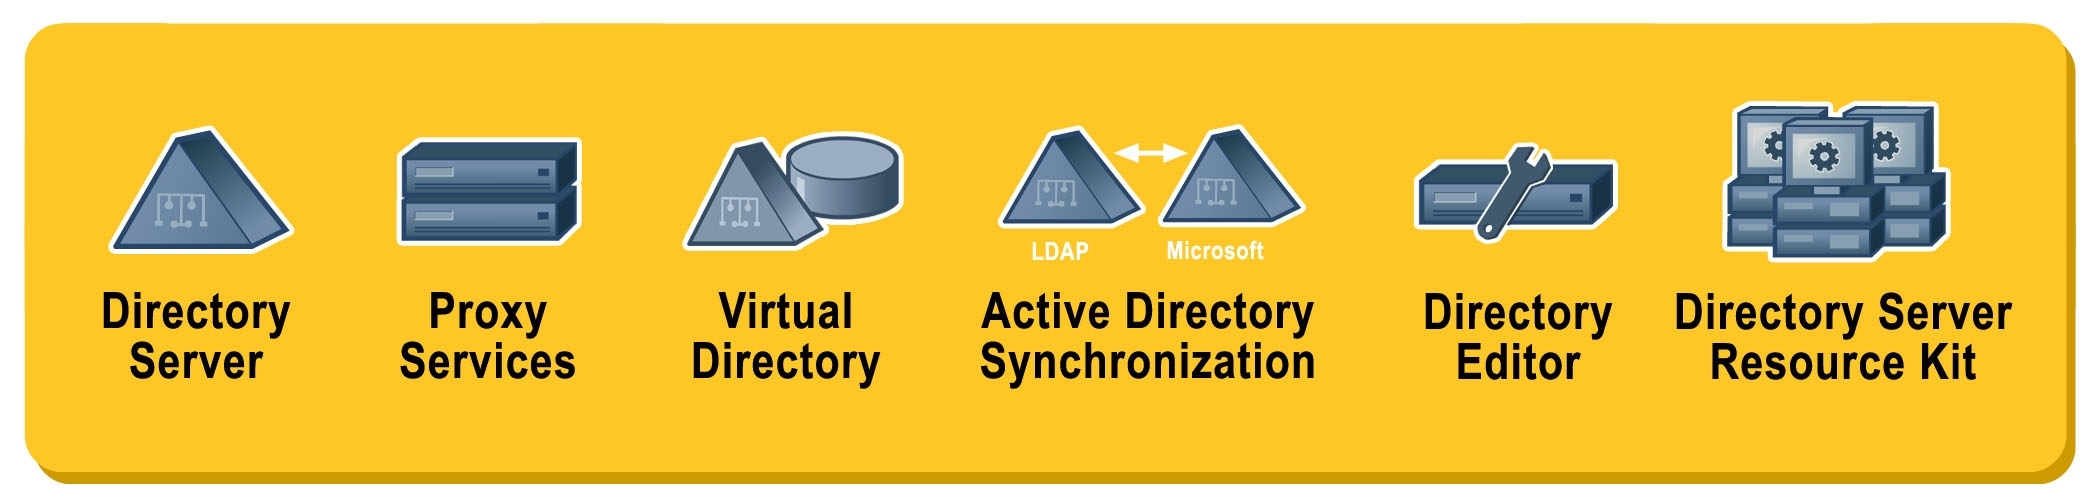 Directory Server Enterprise Edition